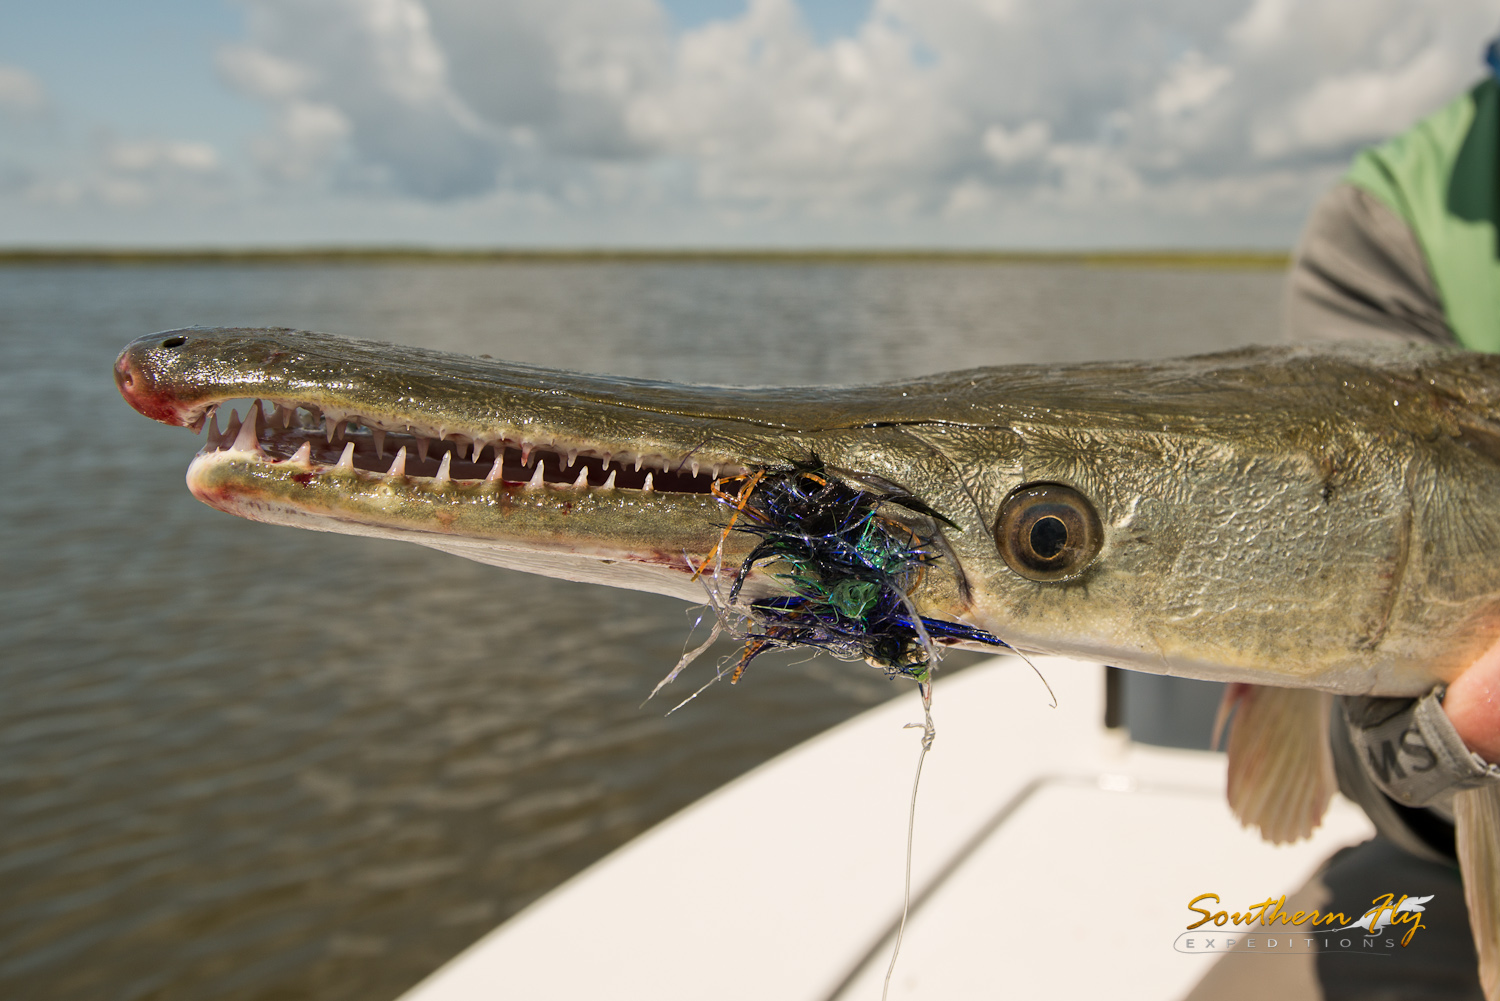 2019-06-29-07-01_SouthernFlyExpeditions_NewOrleans_DanWilcoxAndBrentByquist_Yellowdog-3.jpg